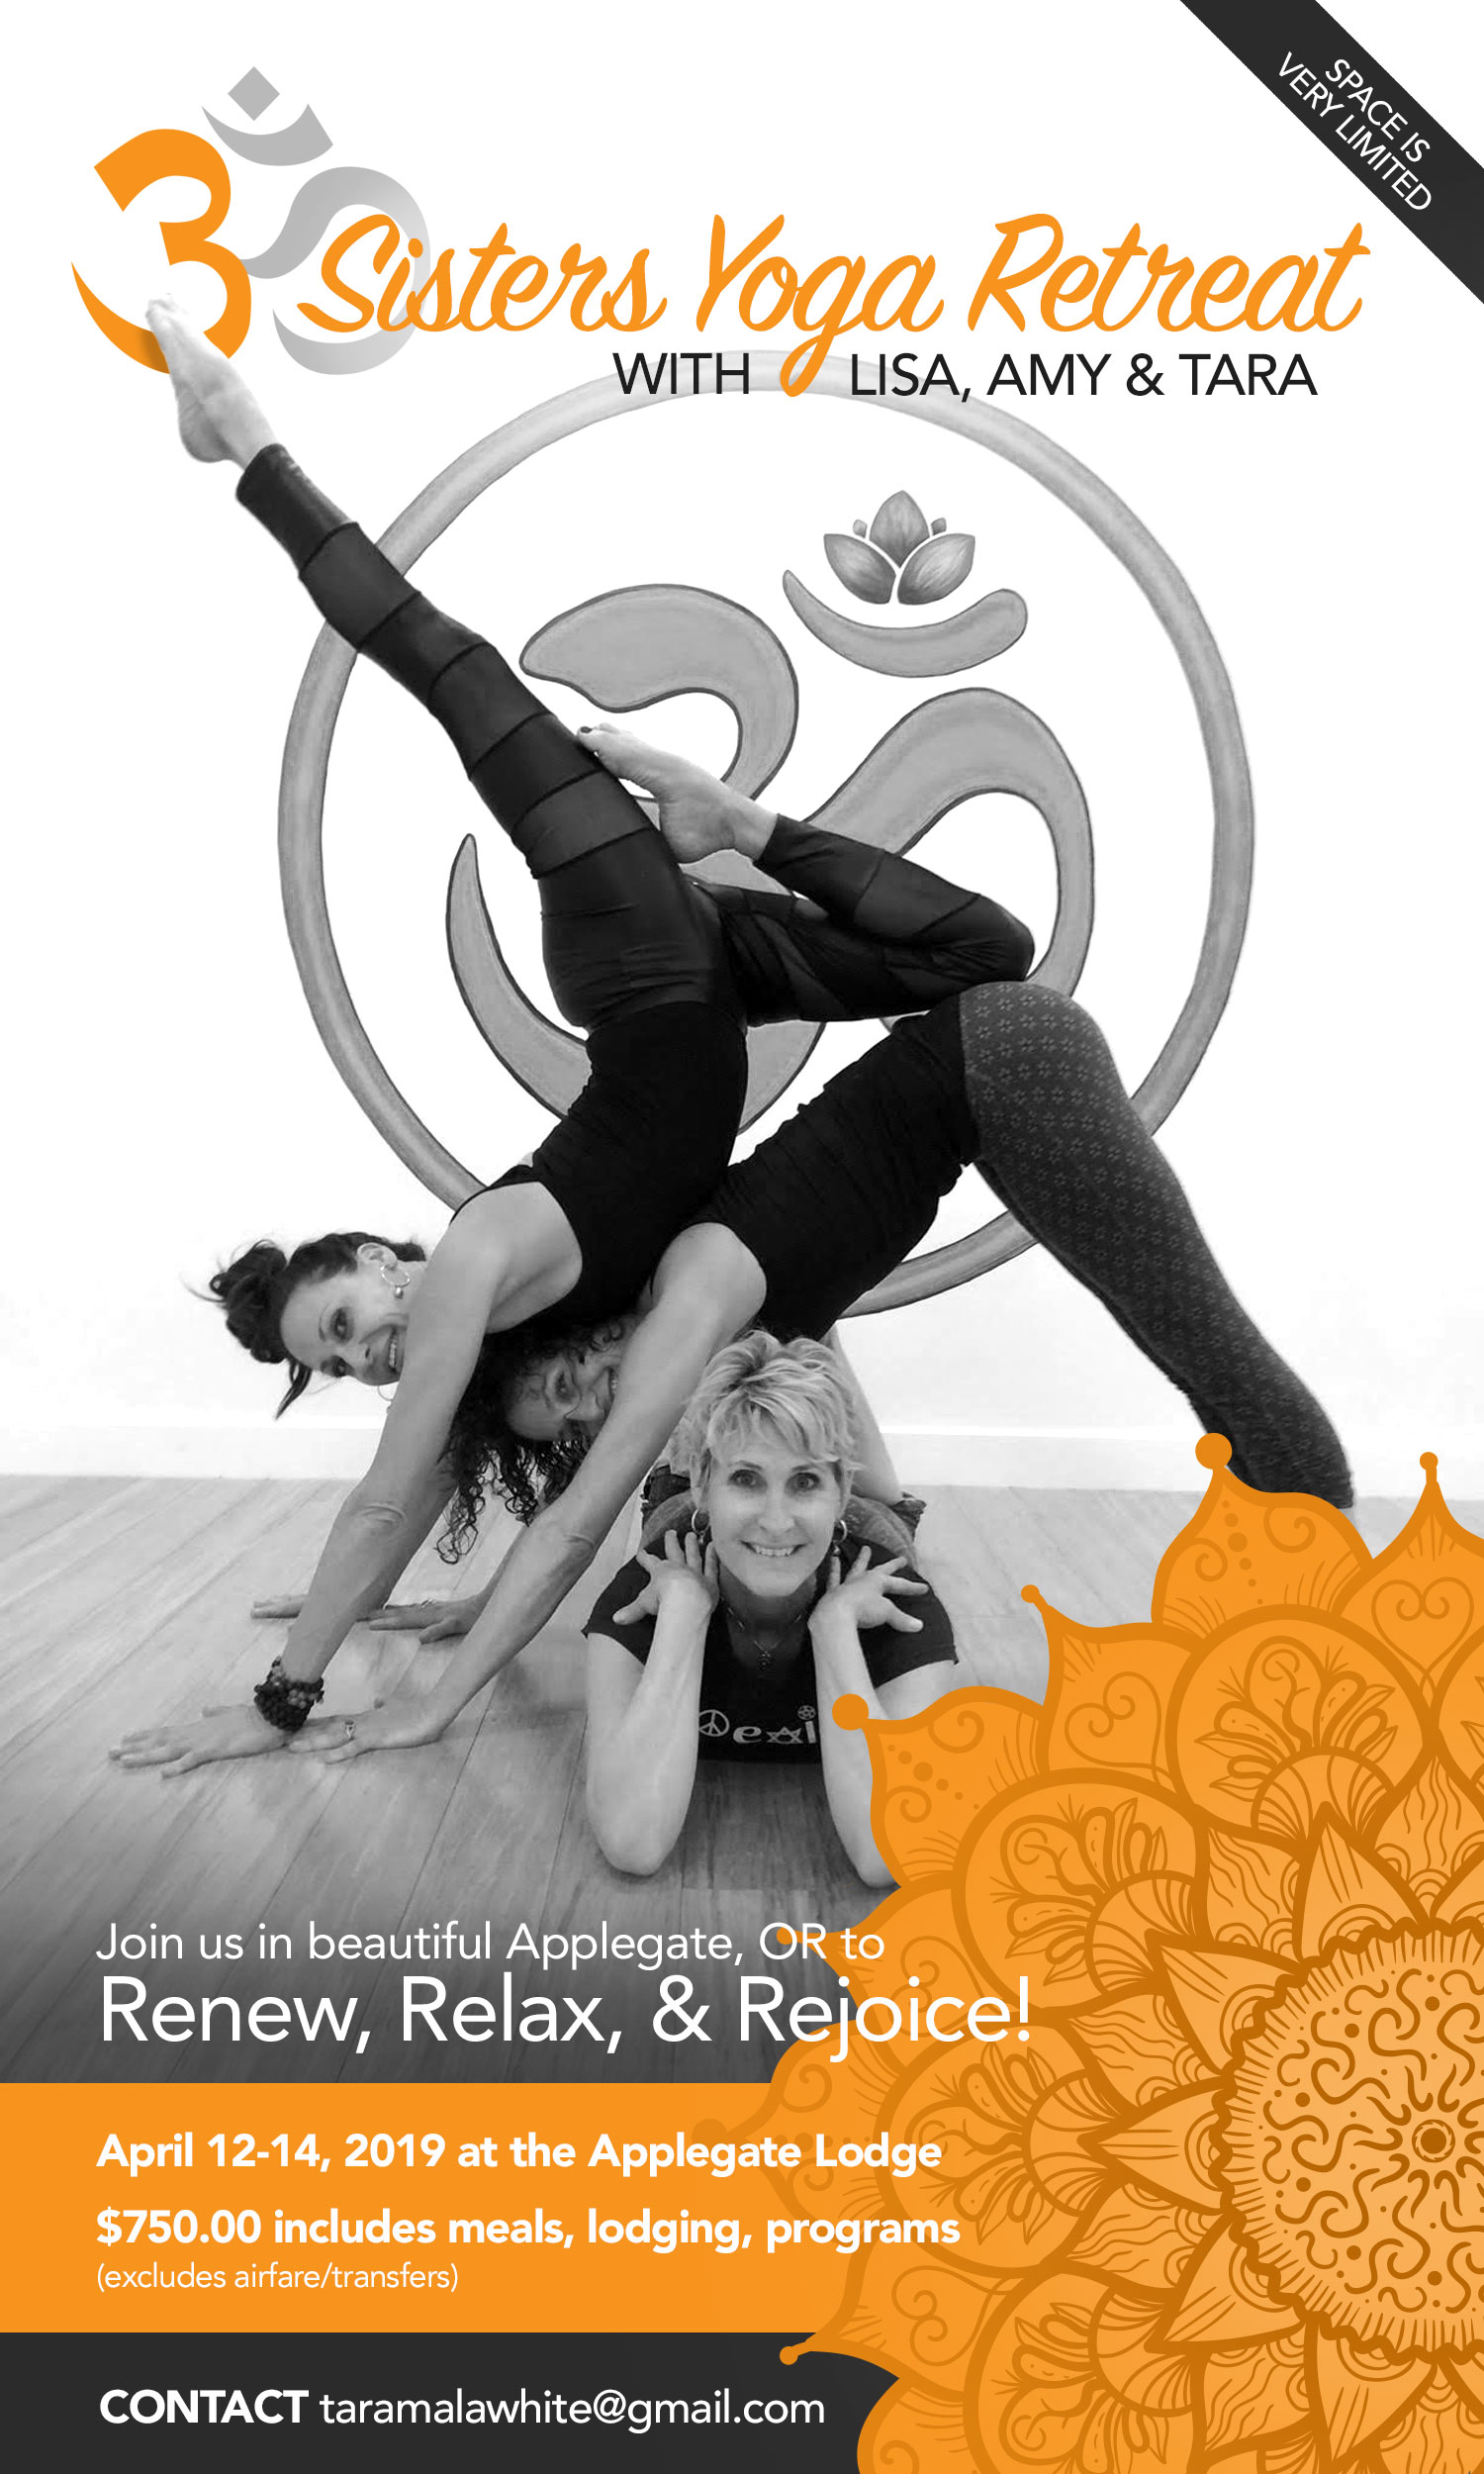 3 Sisters Yoga Retreat